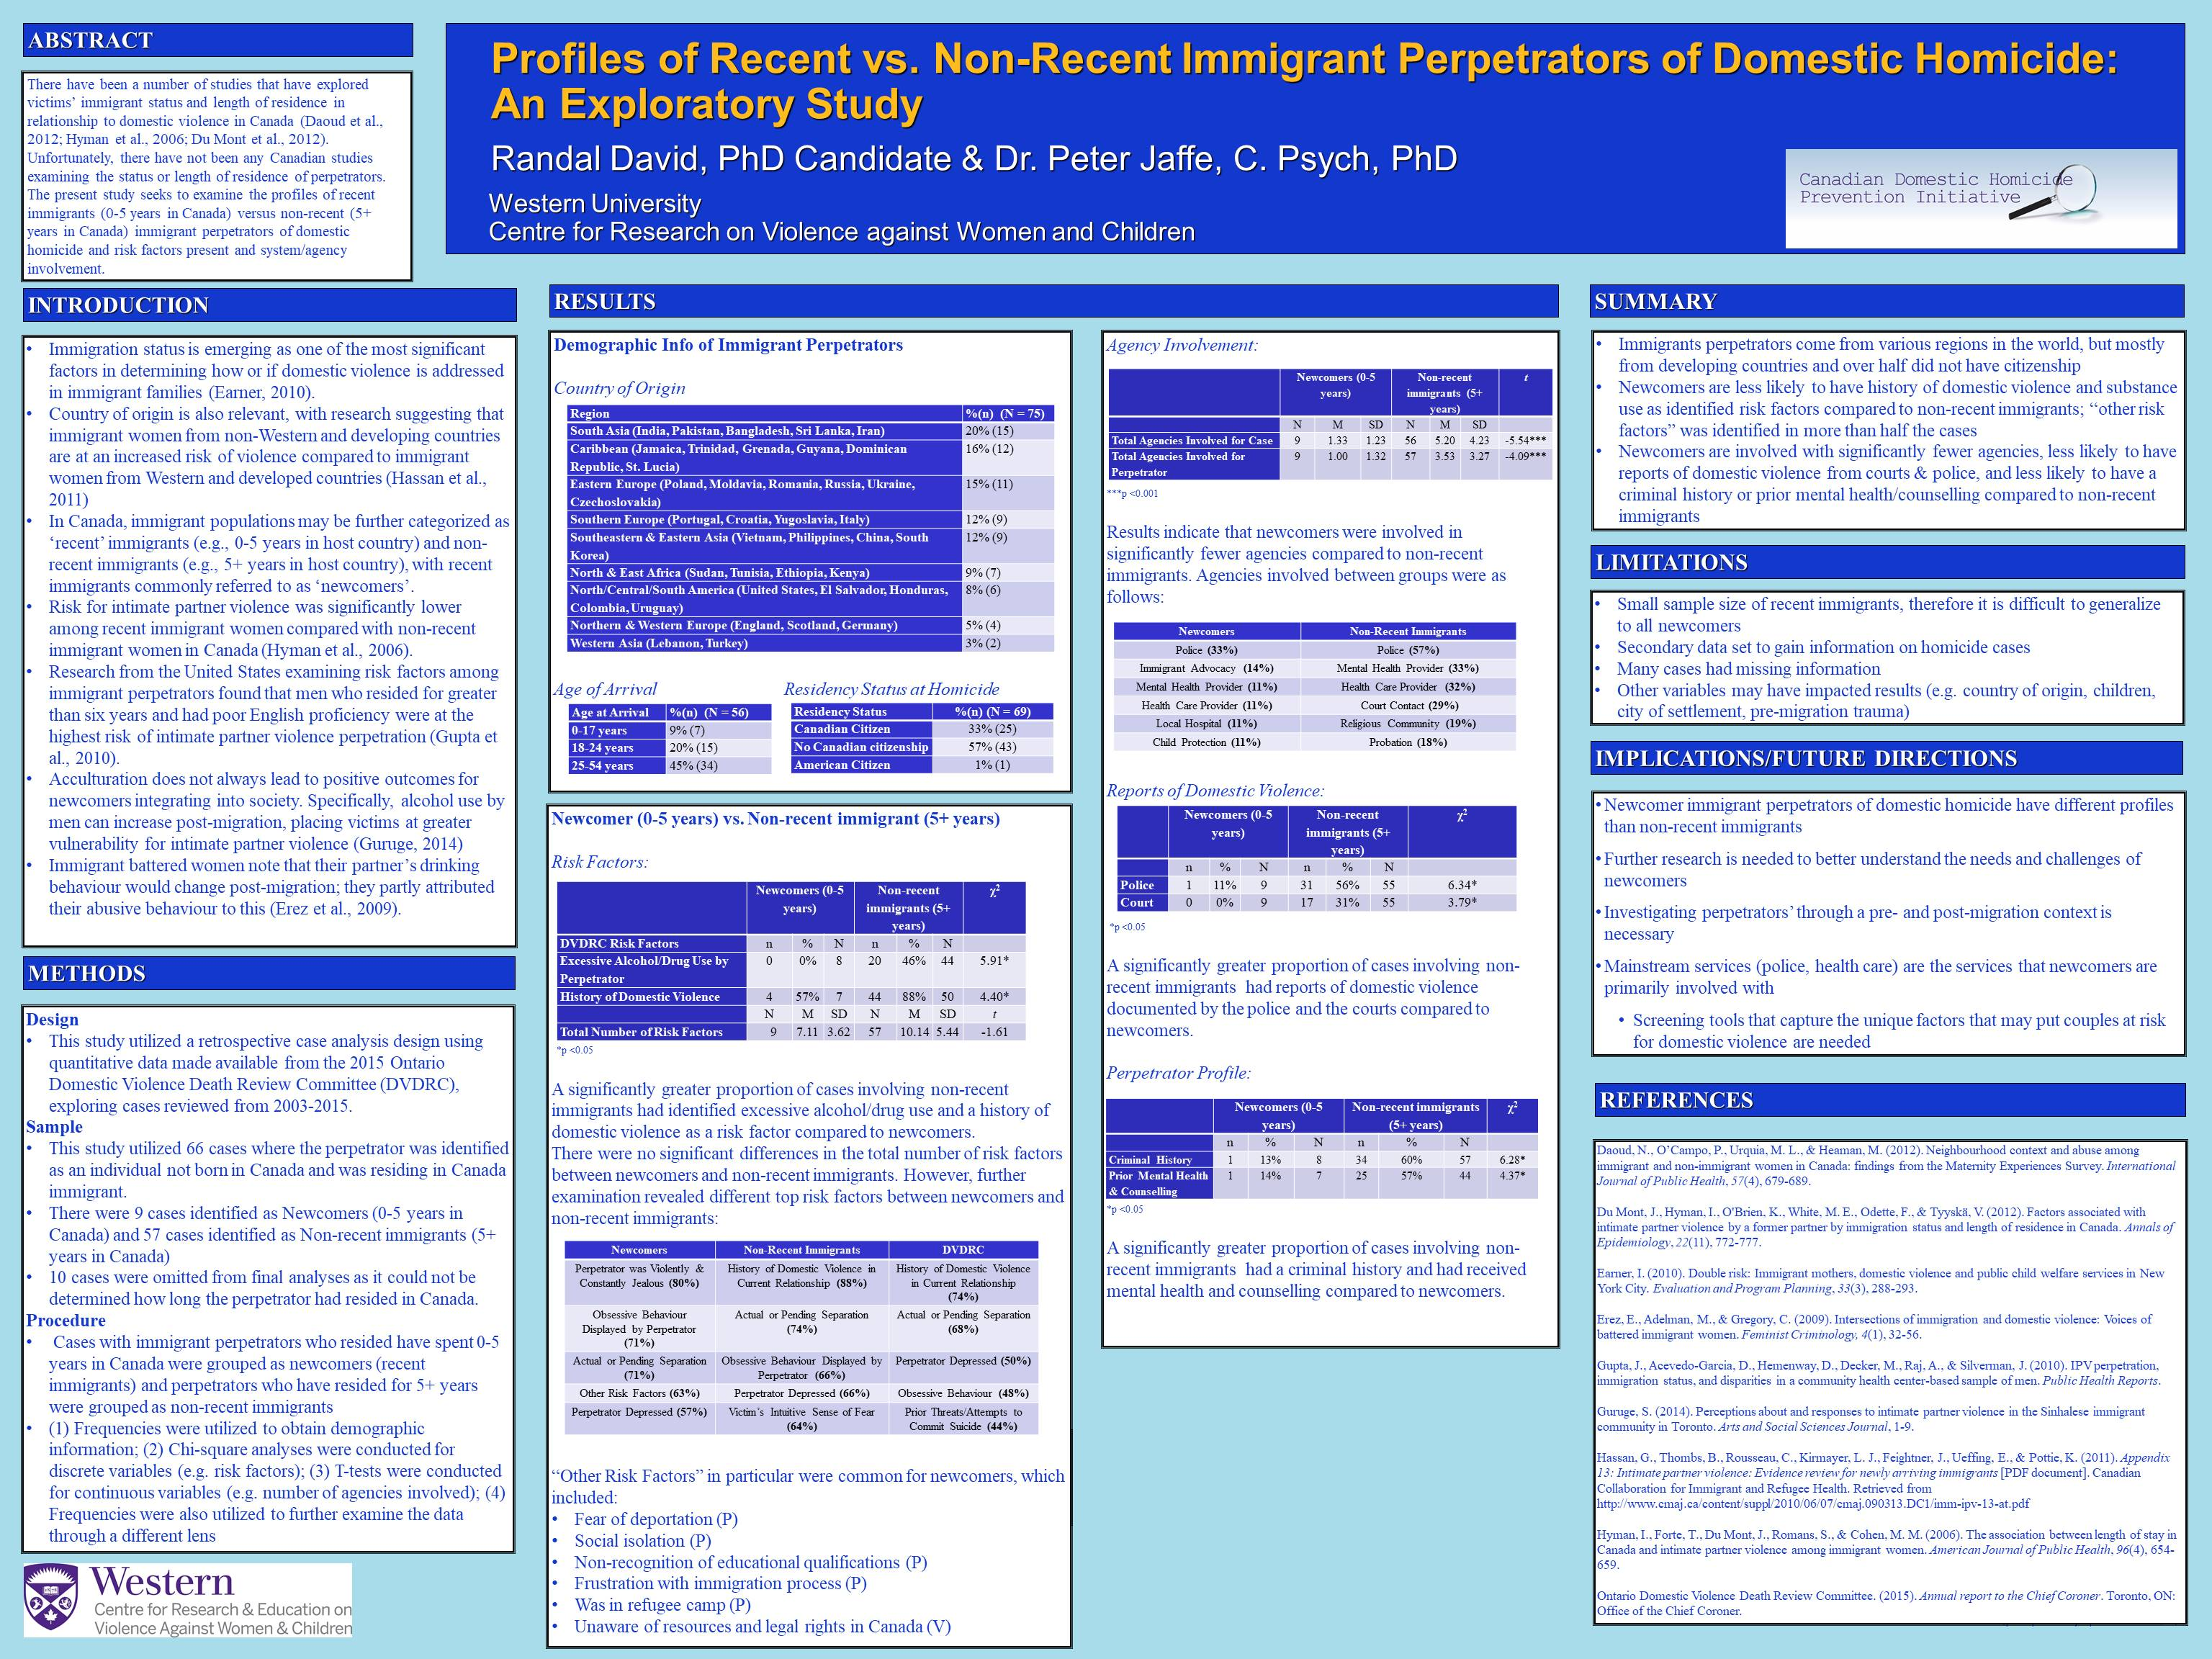 Profiles of Recent vs. Non-Recent Immigrant Perpetrators of Domestic Homicide: An Exploratory Study Poster